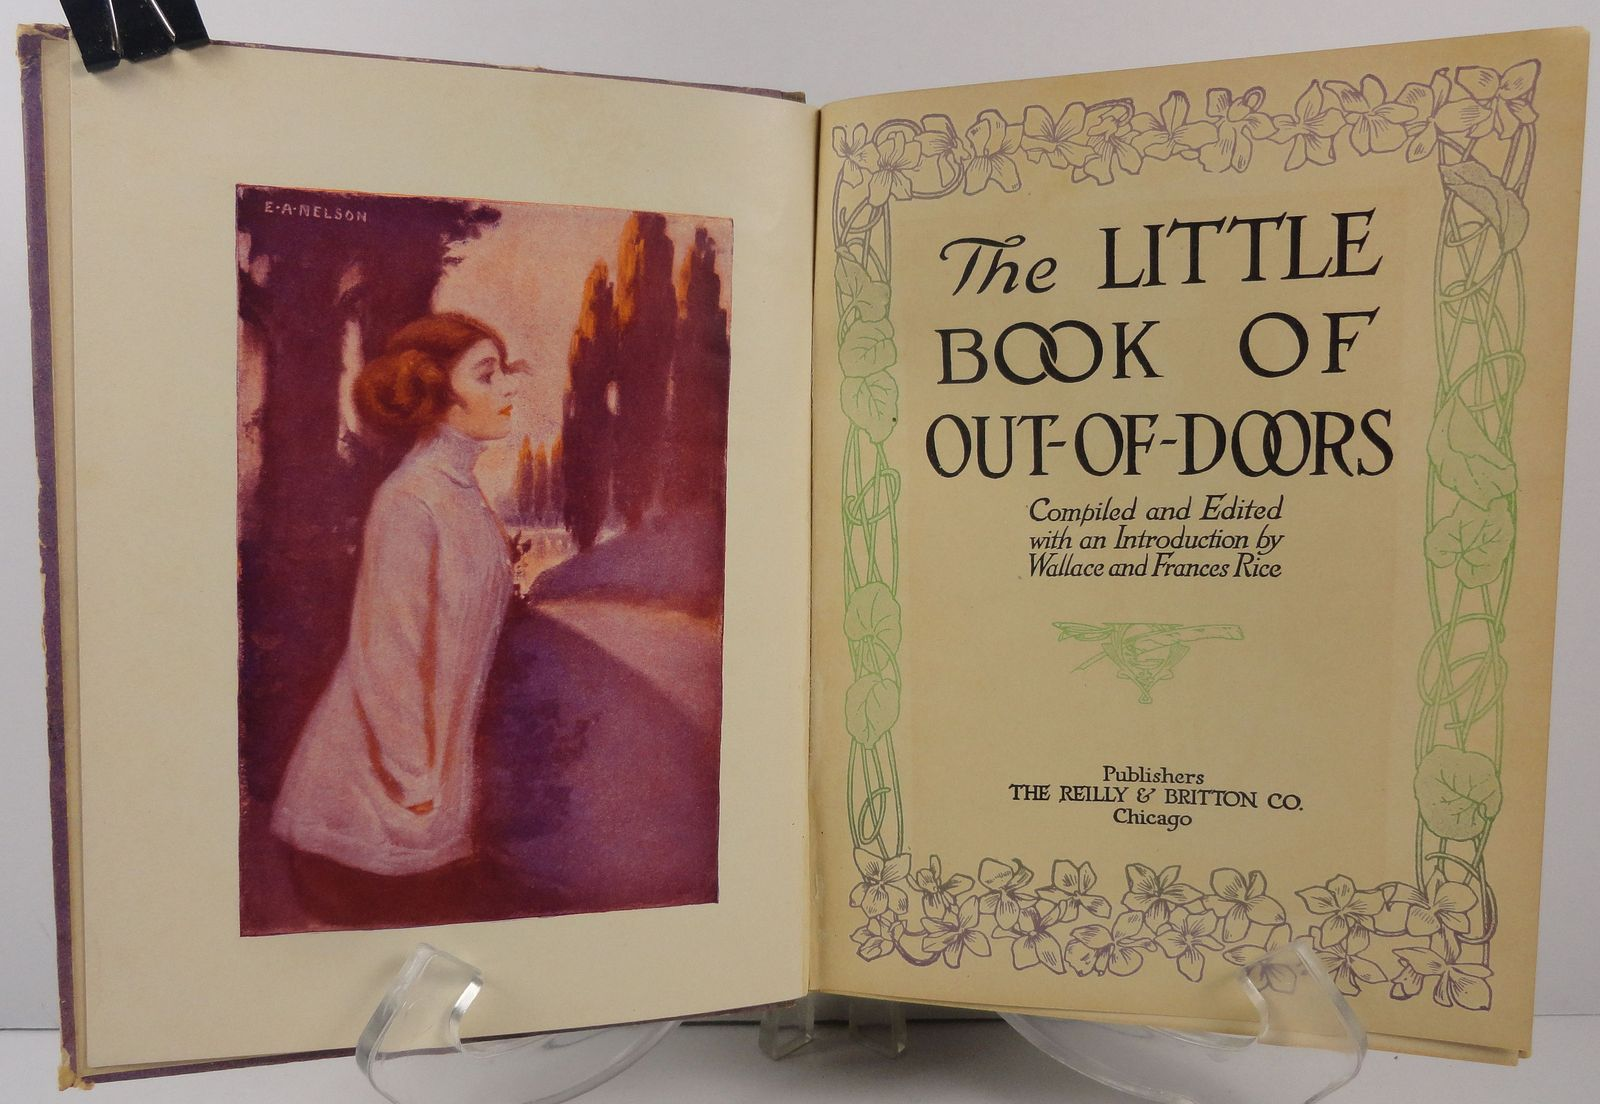 The Little Book of Out of Doors by Wallace and Frances Rice